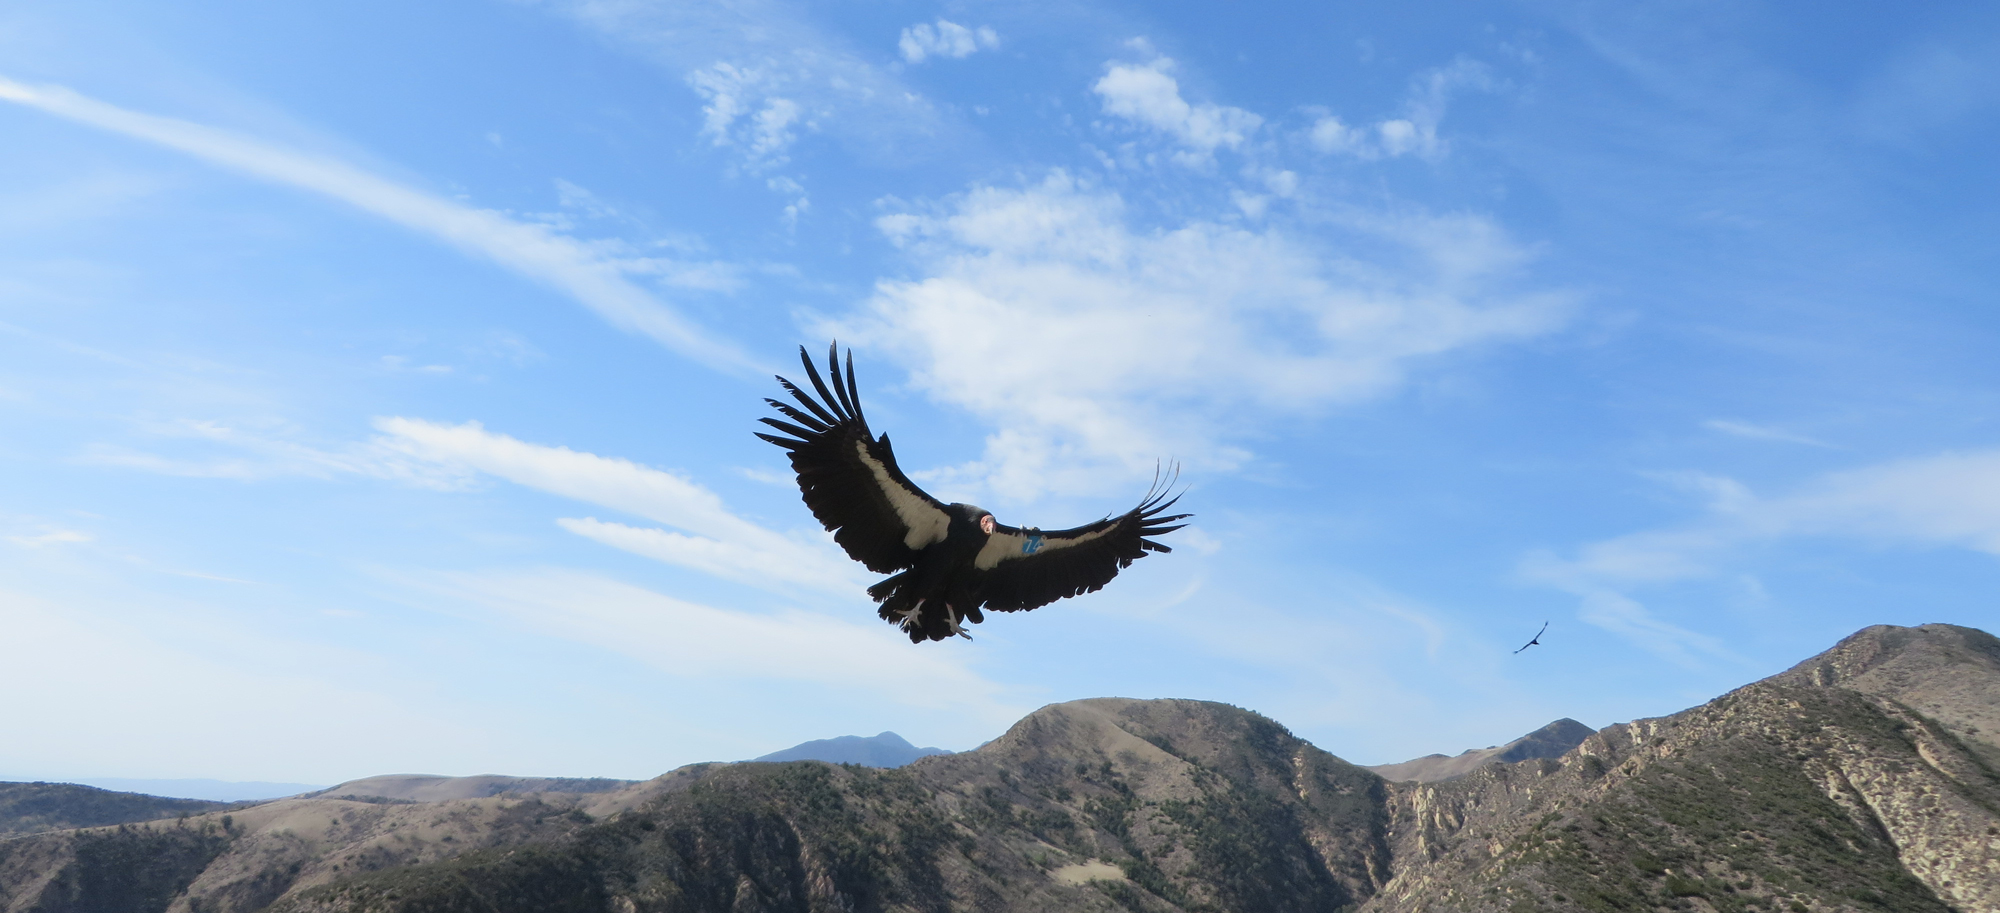 California condors return to the skies after near extinction   NewsChannel 3-12